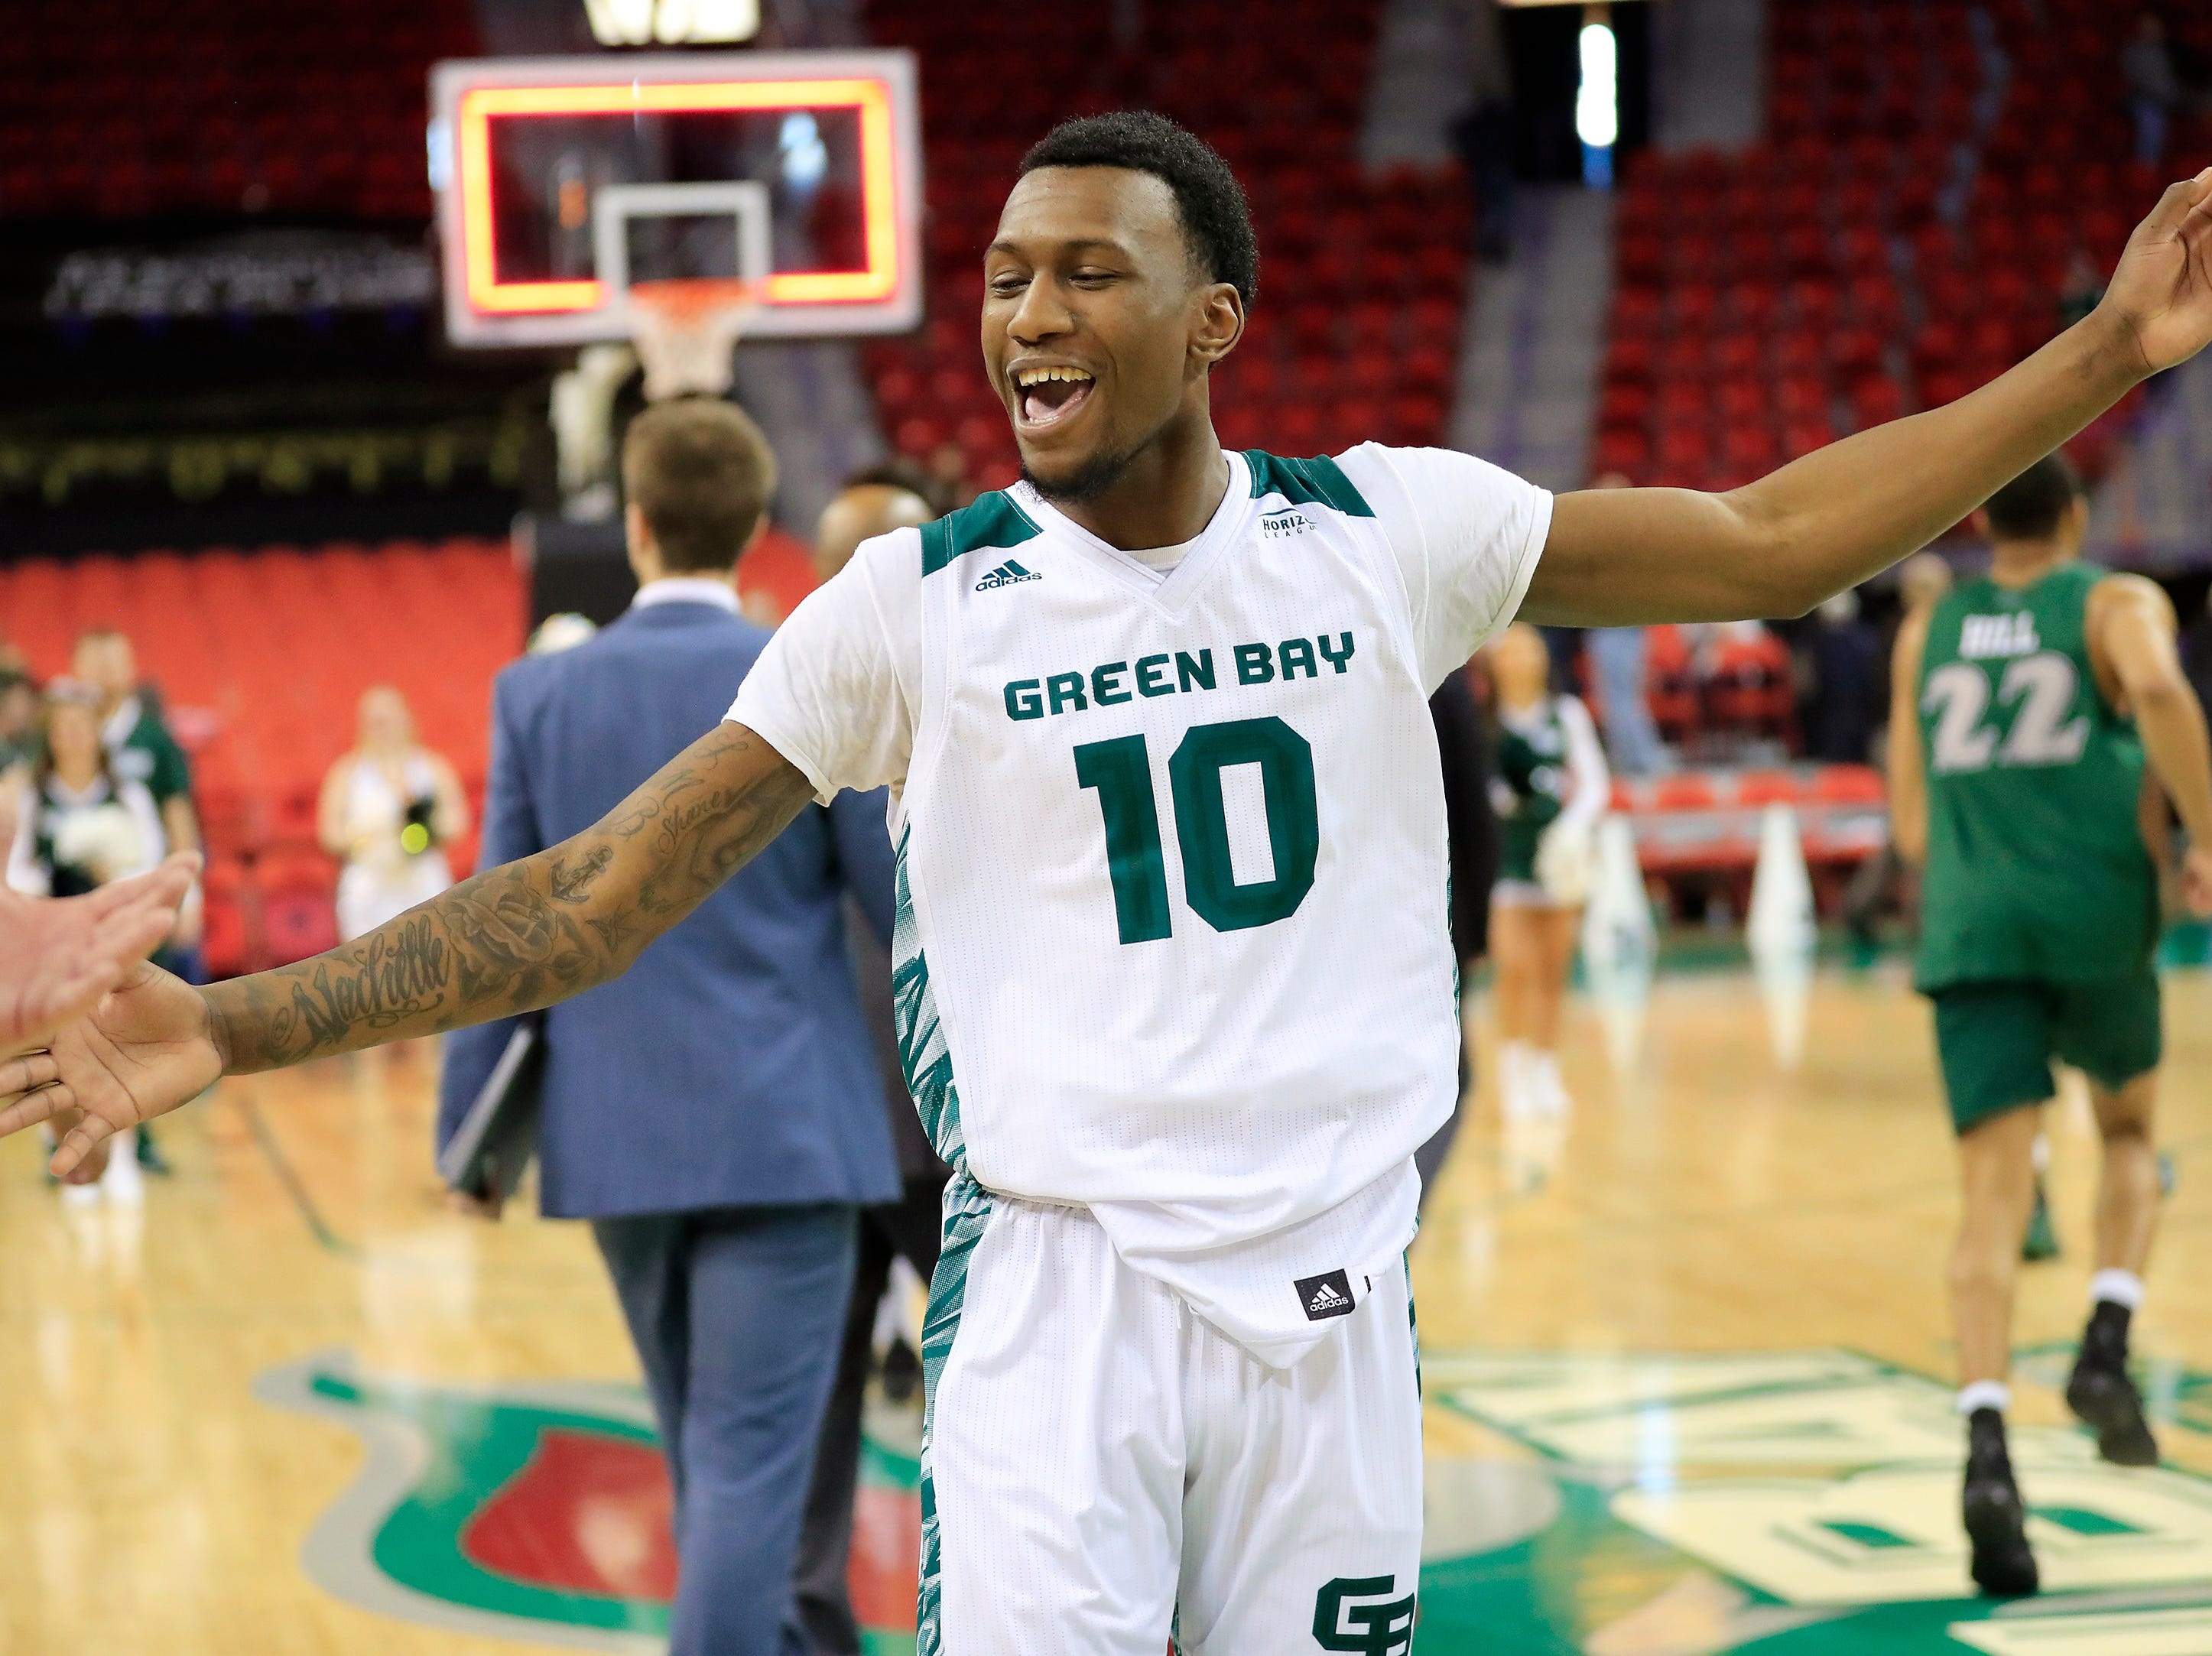 Green Bay Phoenix forward Shanquan Hemphill (10) celebrates as he runs off the court after the Phoenix defeated the Cleveland State Vikings in a Horizon League basketball game at the Resch Center on Saturday, January 5, 2019 in Green Bay, Wis.